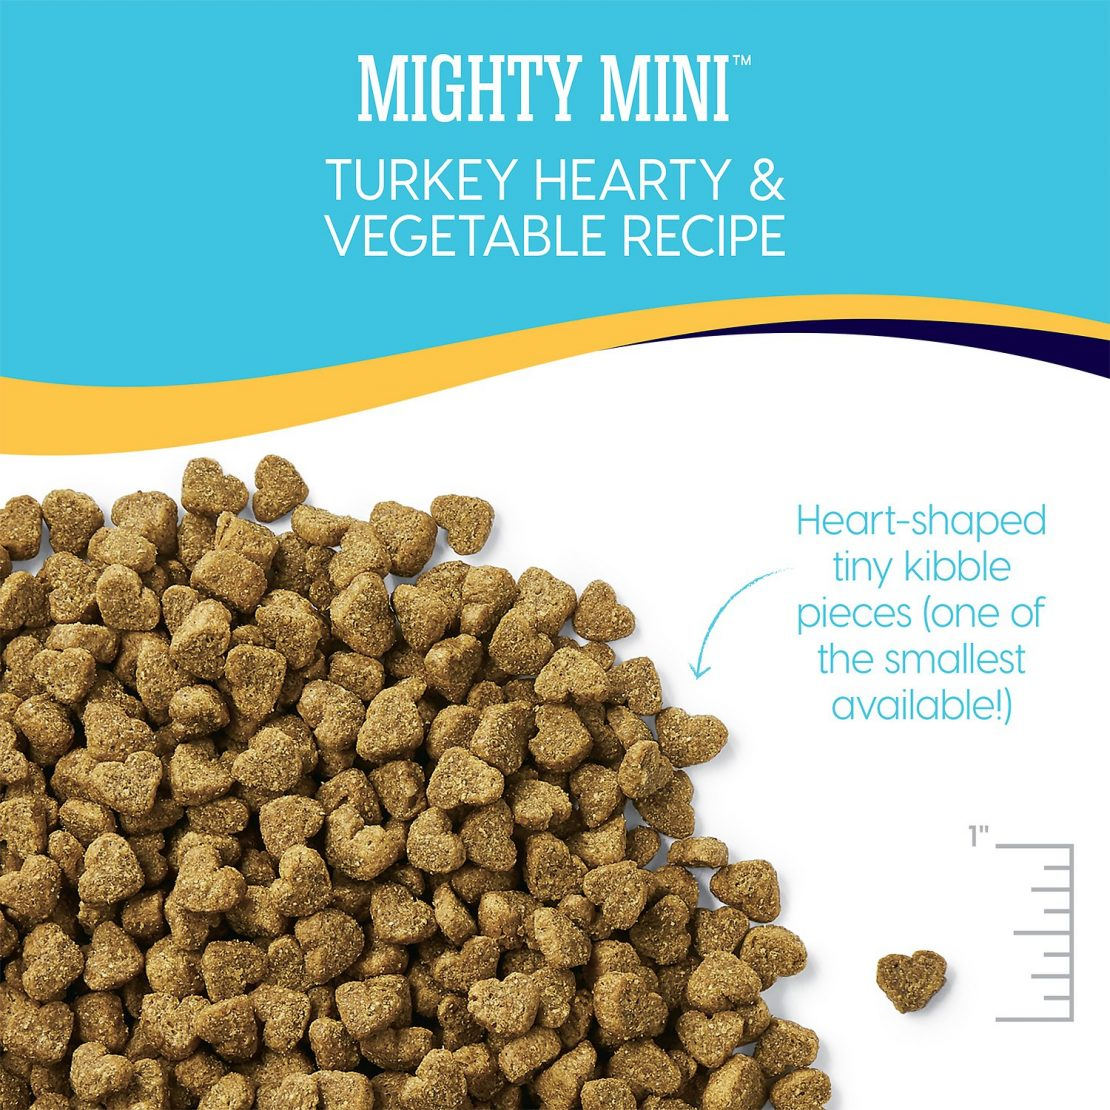 Solid Gold Lil' Boss Grain-Free Small Breed Puppy Food